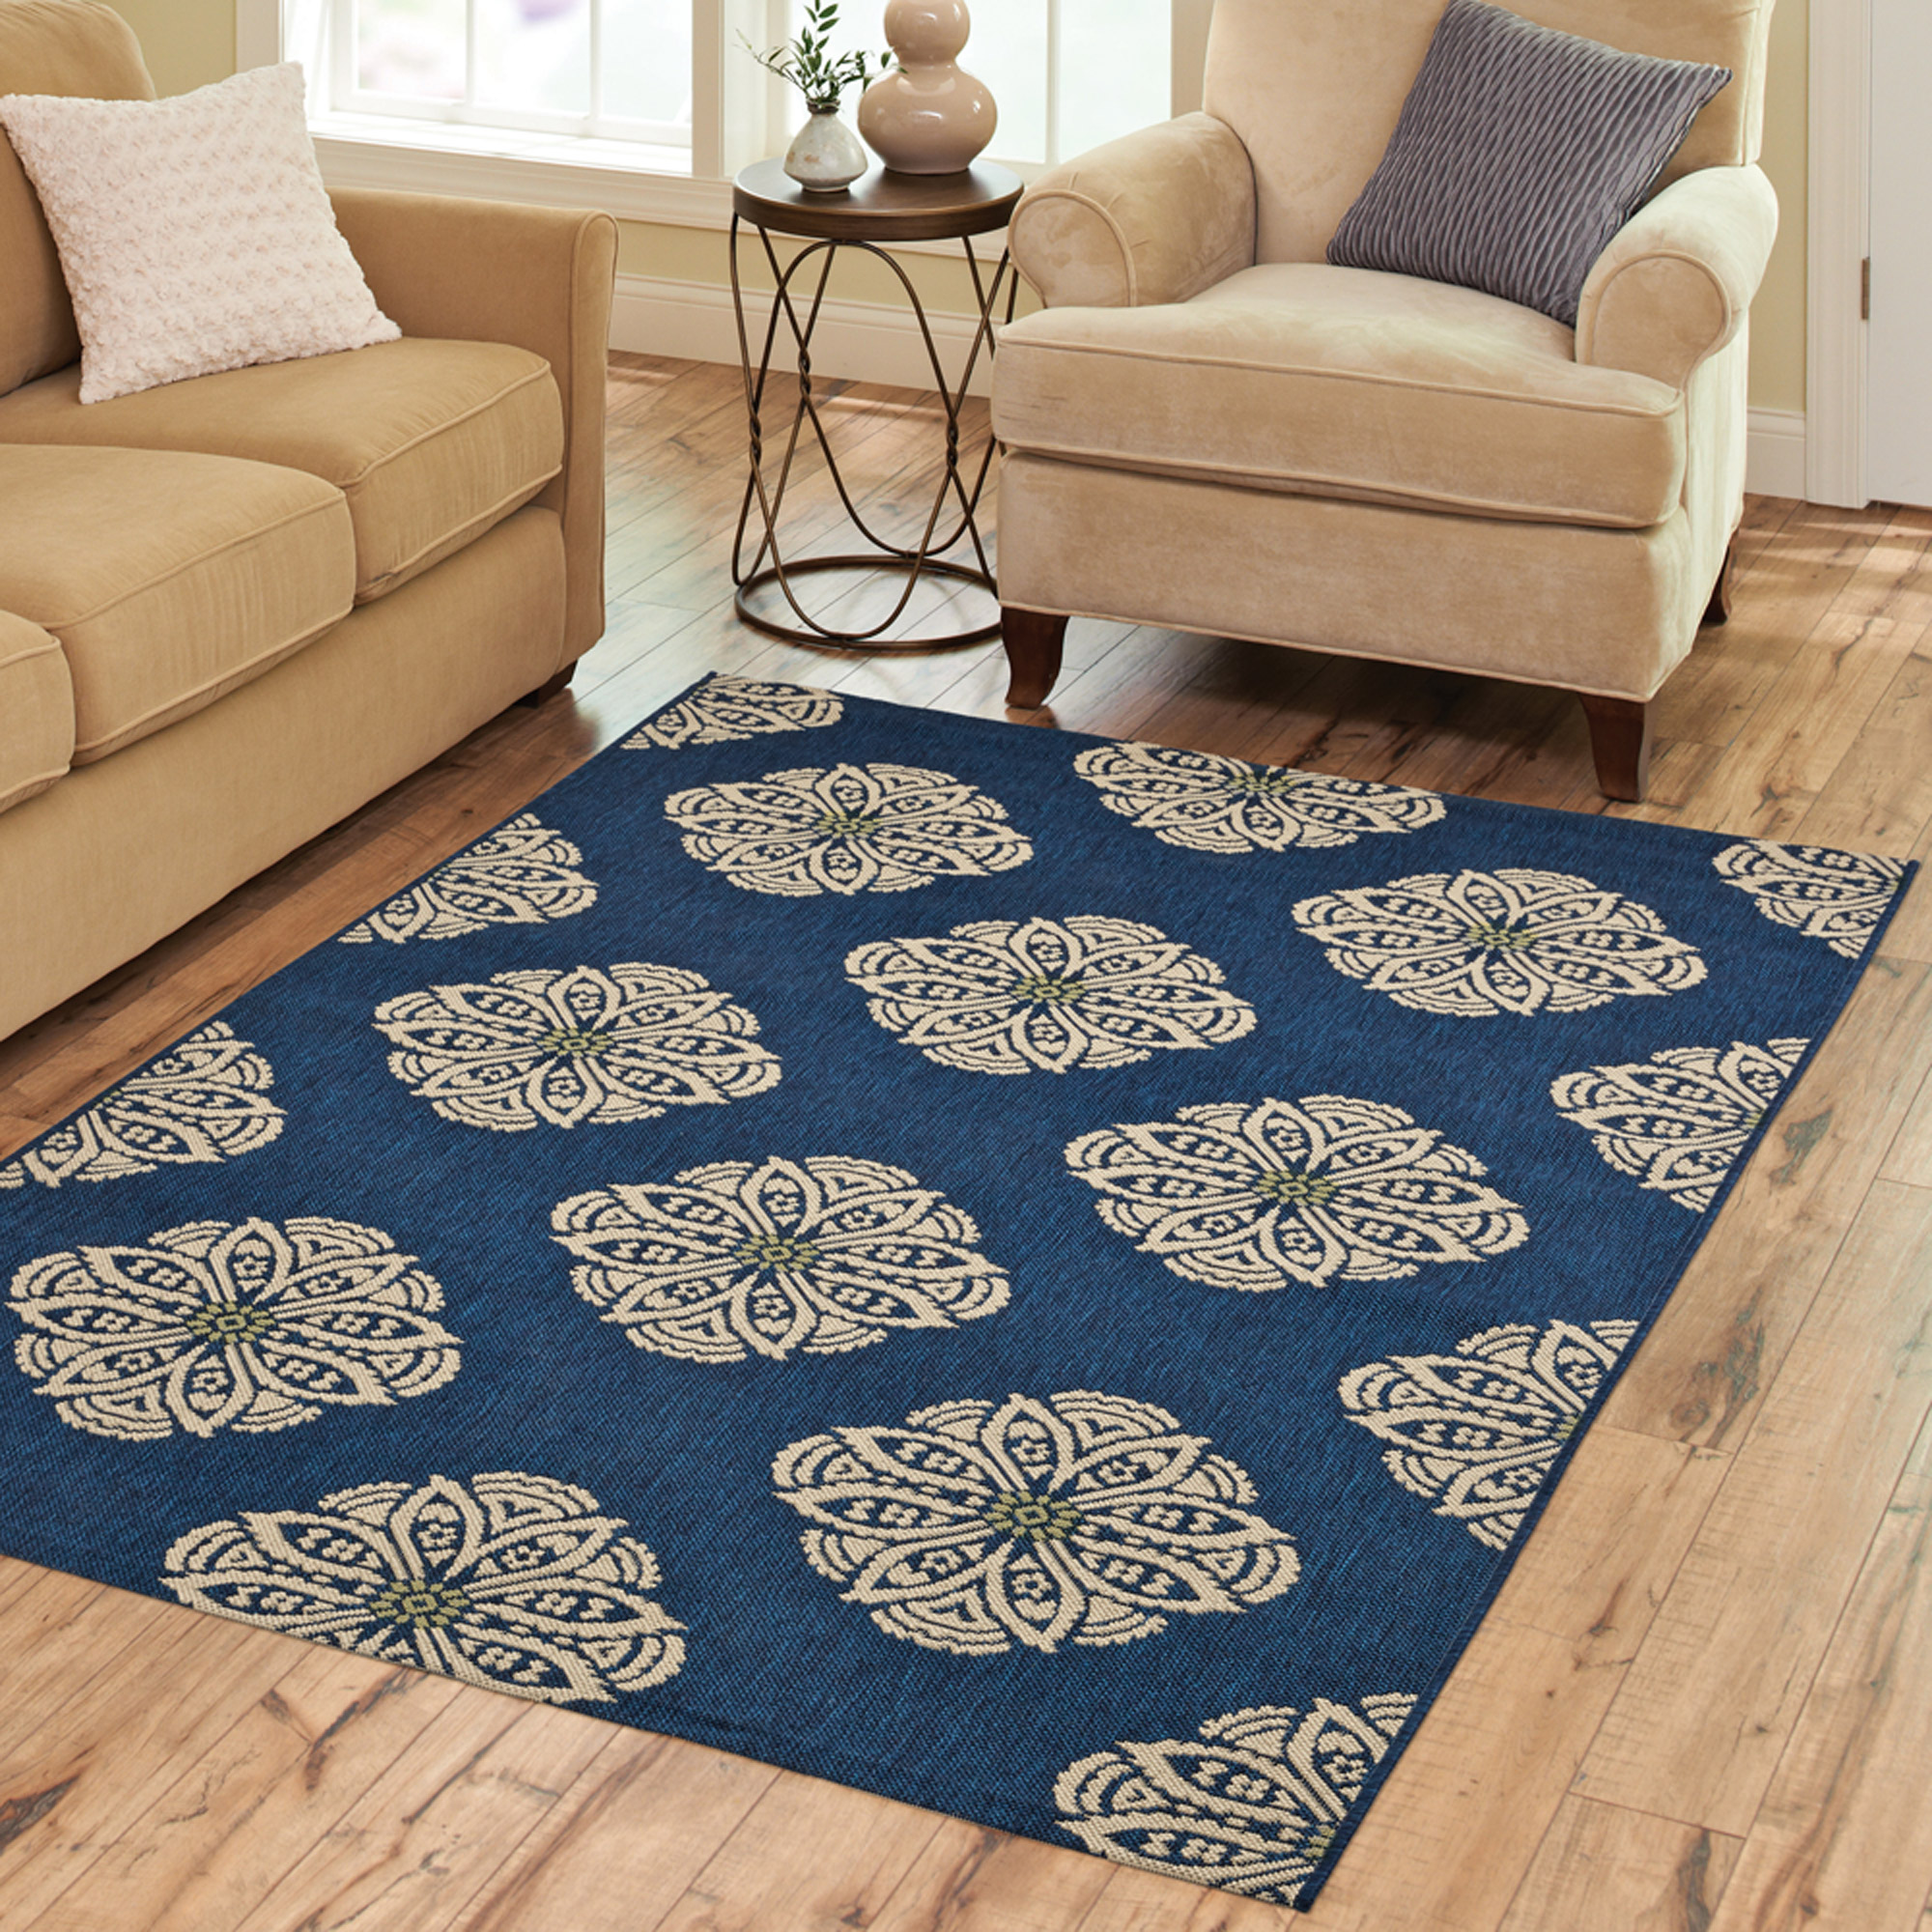 rugs outdoor amazon fabulous green patio carpet sams indoor rug mats walmart club tables red only polypropylene most uk designs camping outside cheap coffee area porch